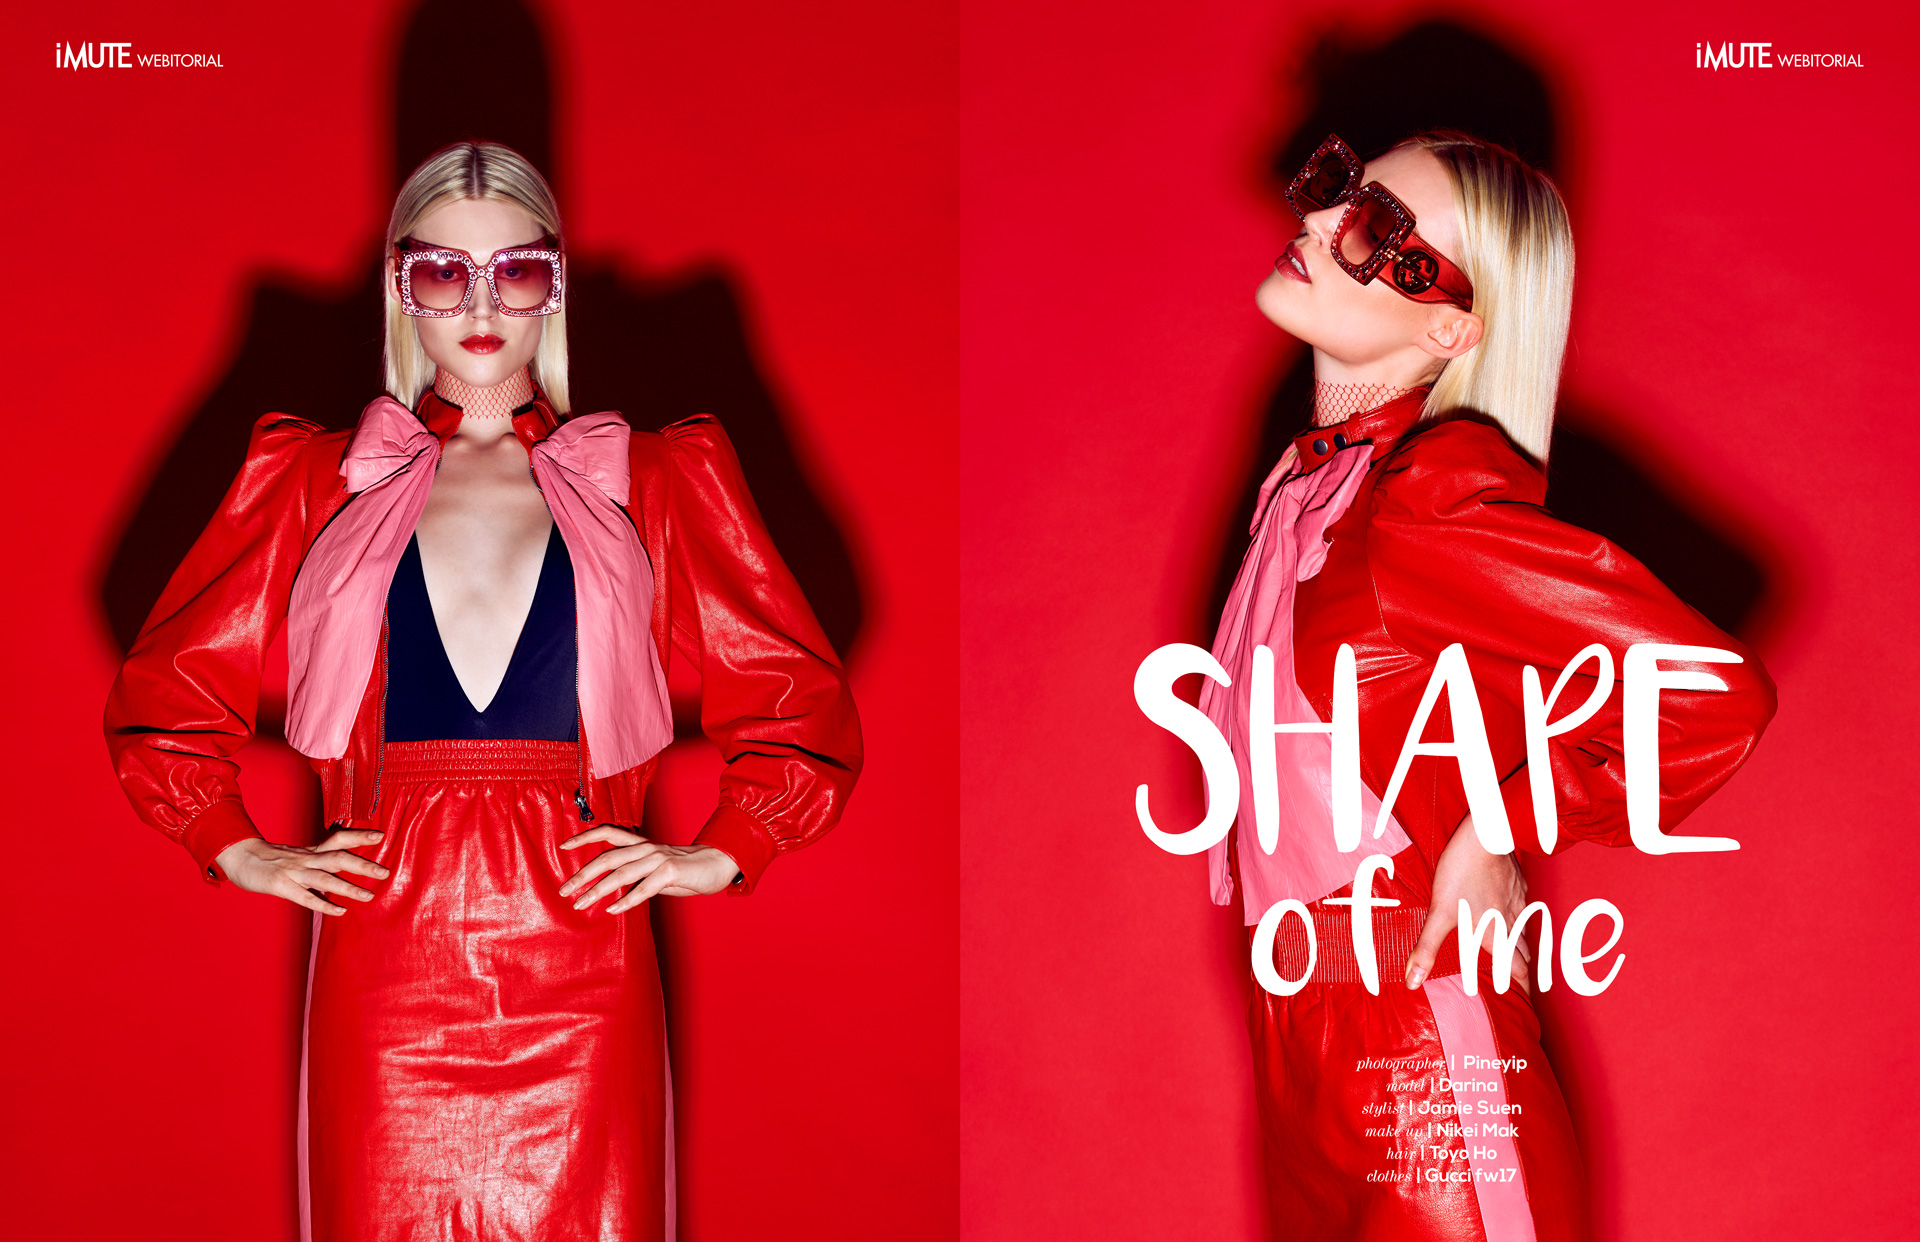 Shape of me webitorial for iMute Magazine Photographer | Pine Yip Model | Darina Stylist | Jamie Suen Makeup | Nikei Mak Hair | Toyo Ho Clothes | Gucci fw17